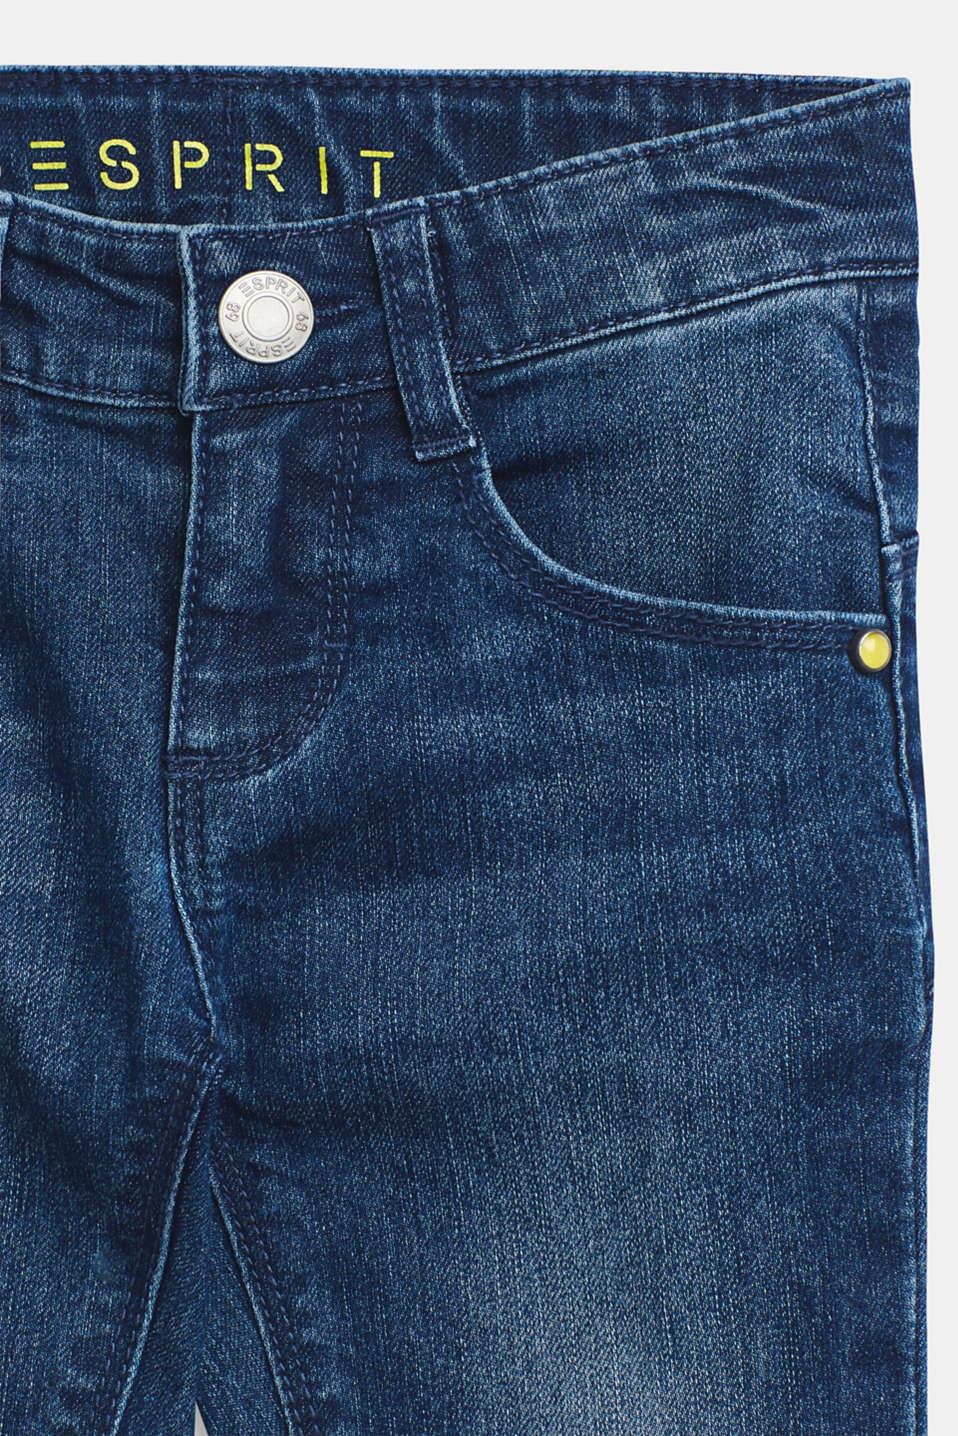 3/4 stretch jeans with adjustable waistband, MEDIUM WASH DE, detail image number 2